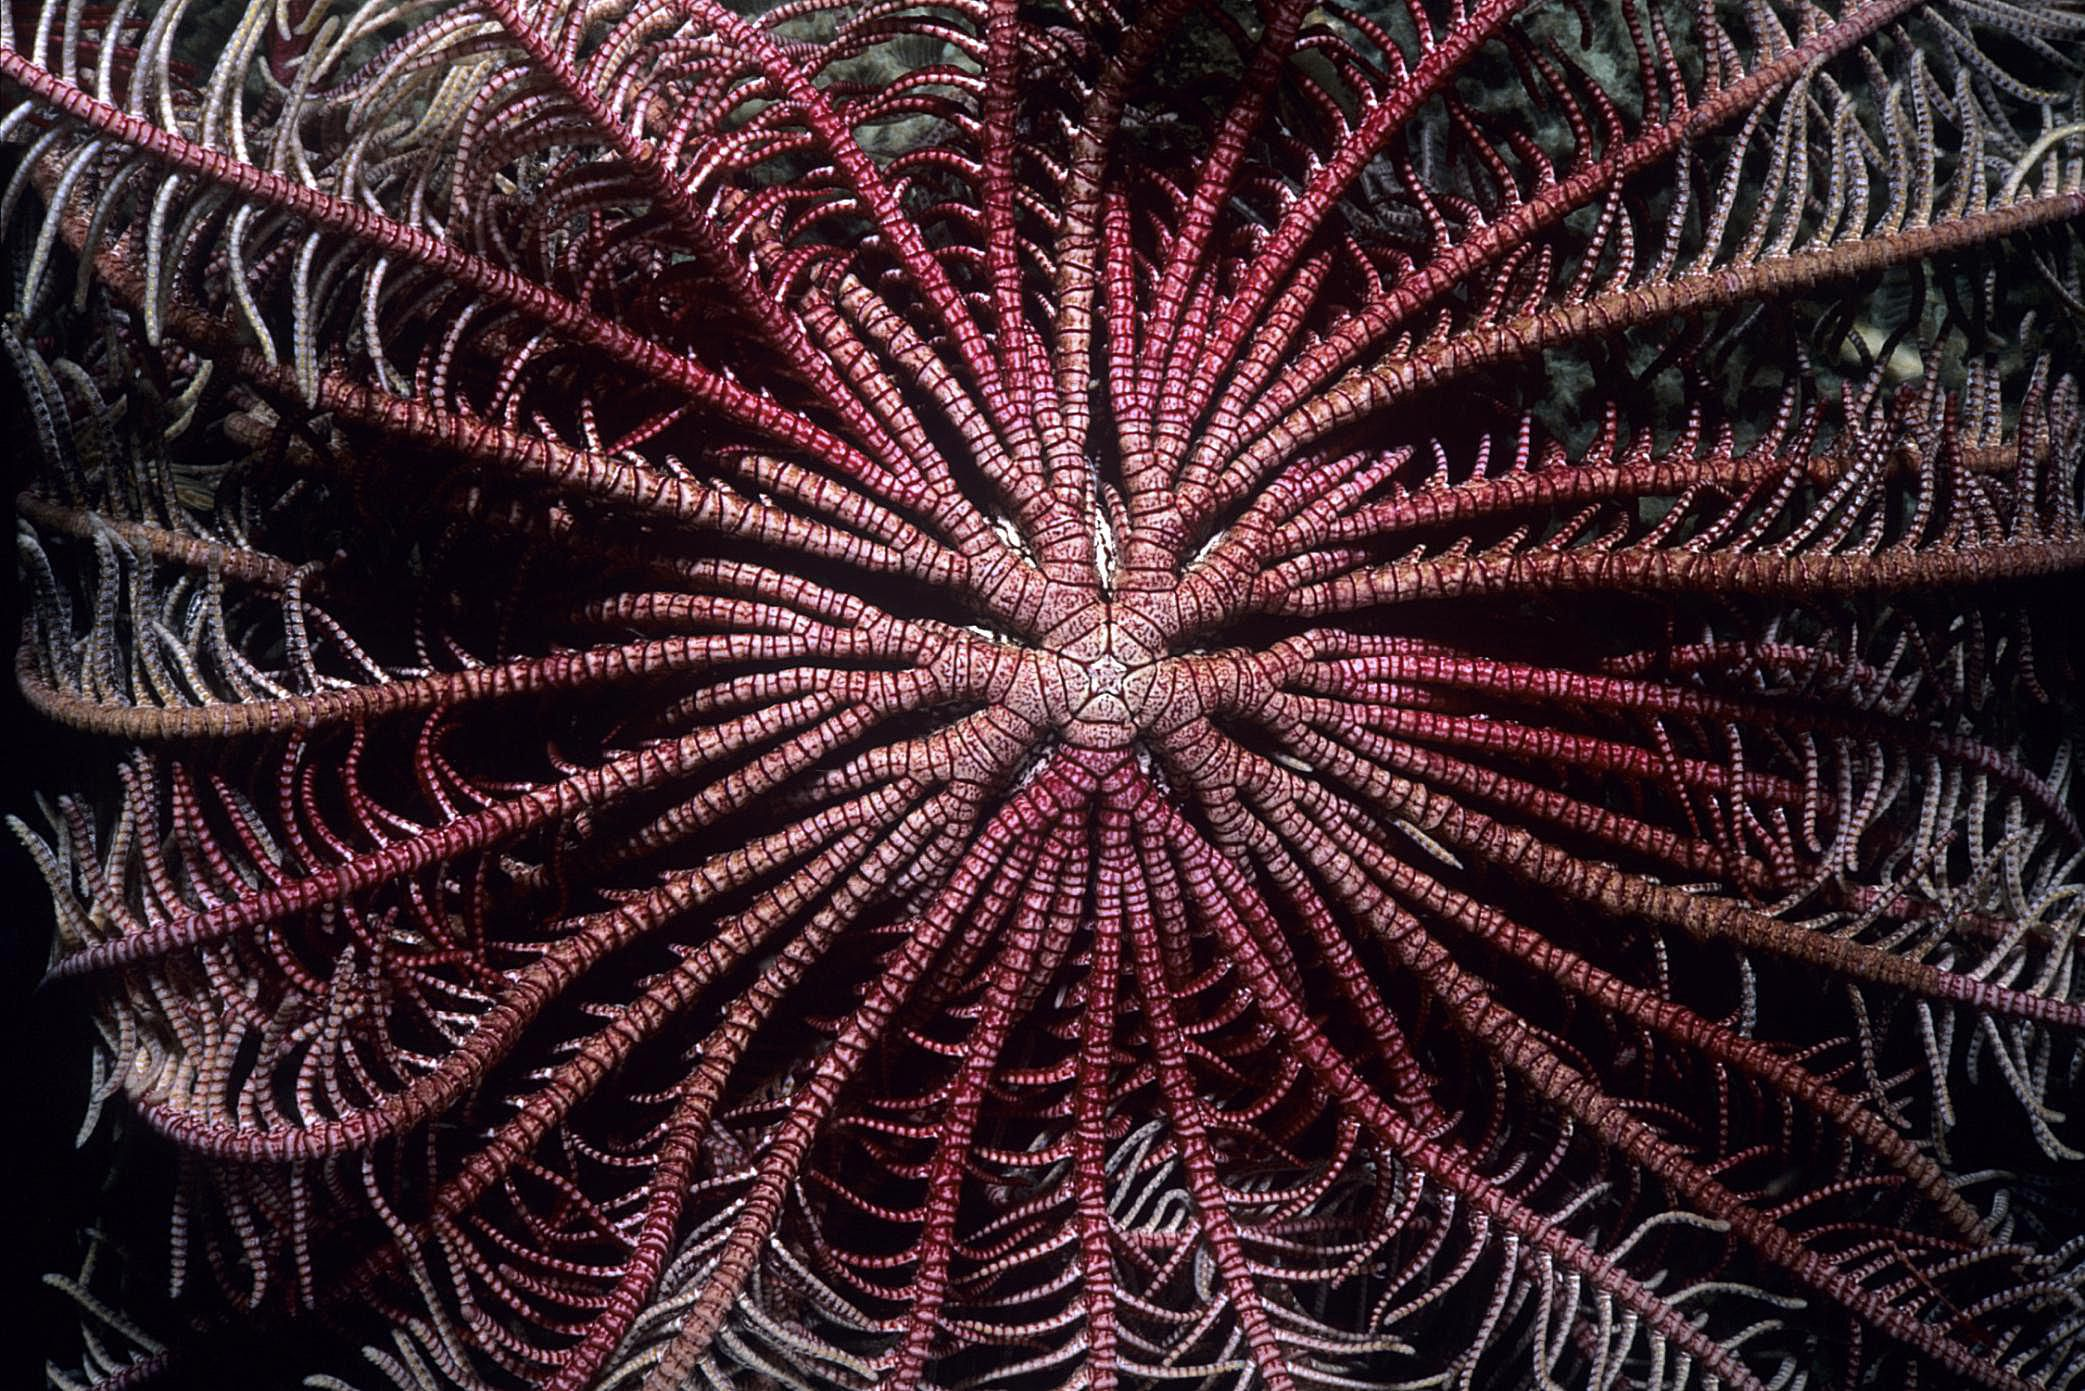 Radial Symmetry In Marine Life